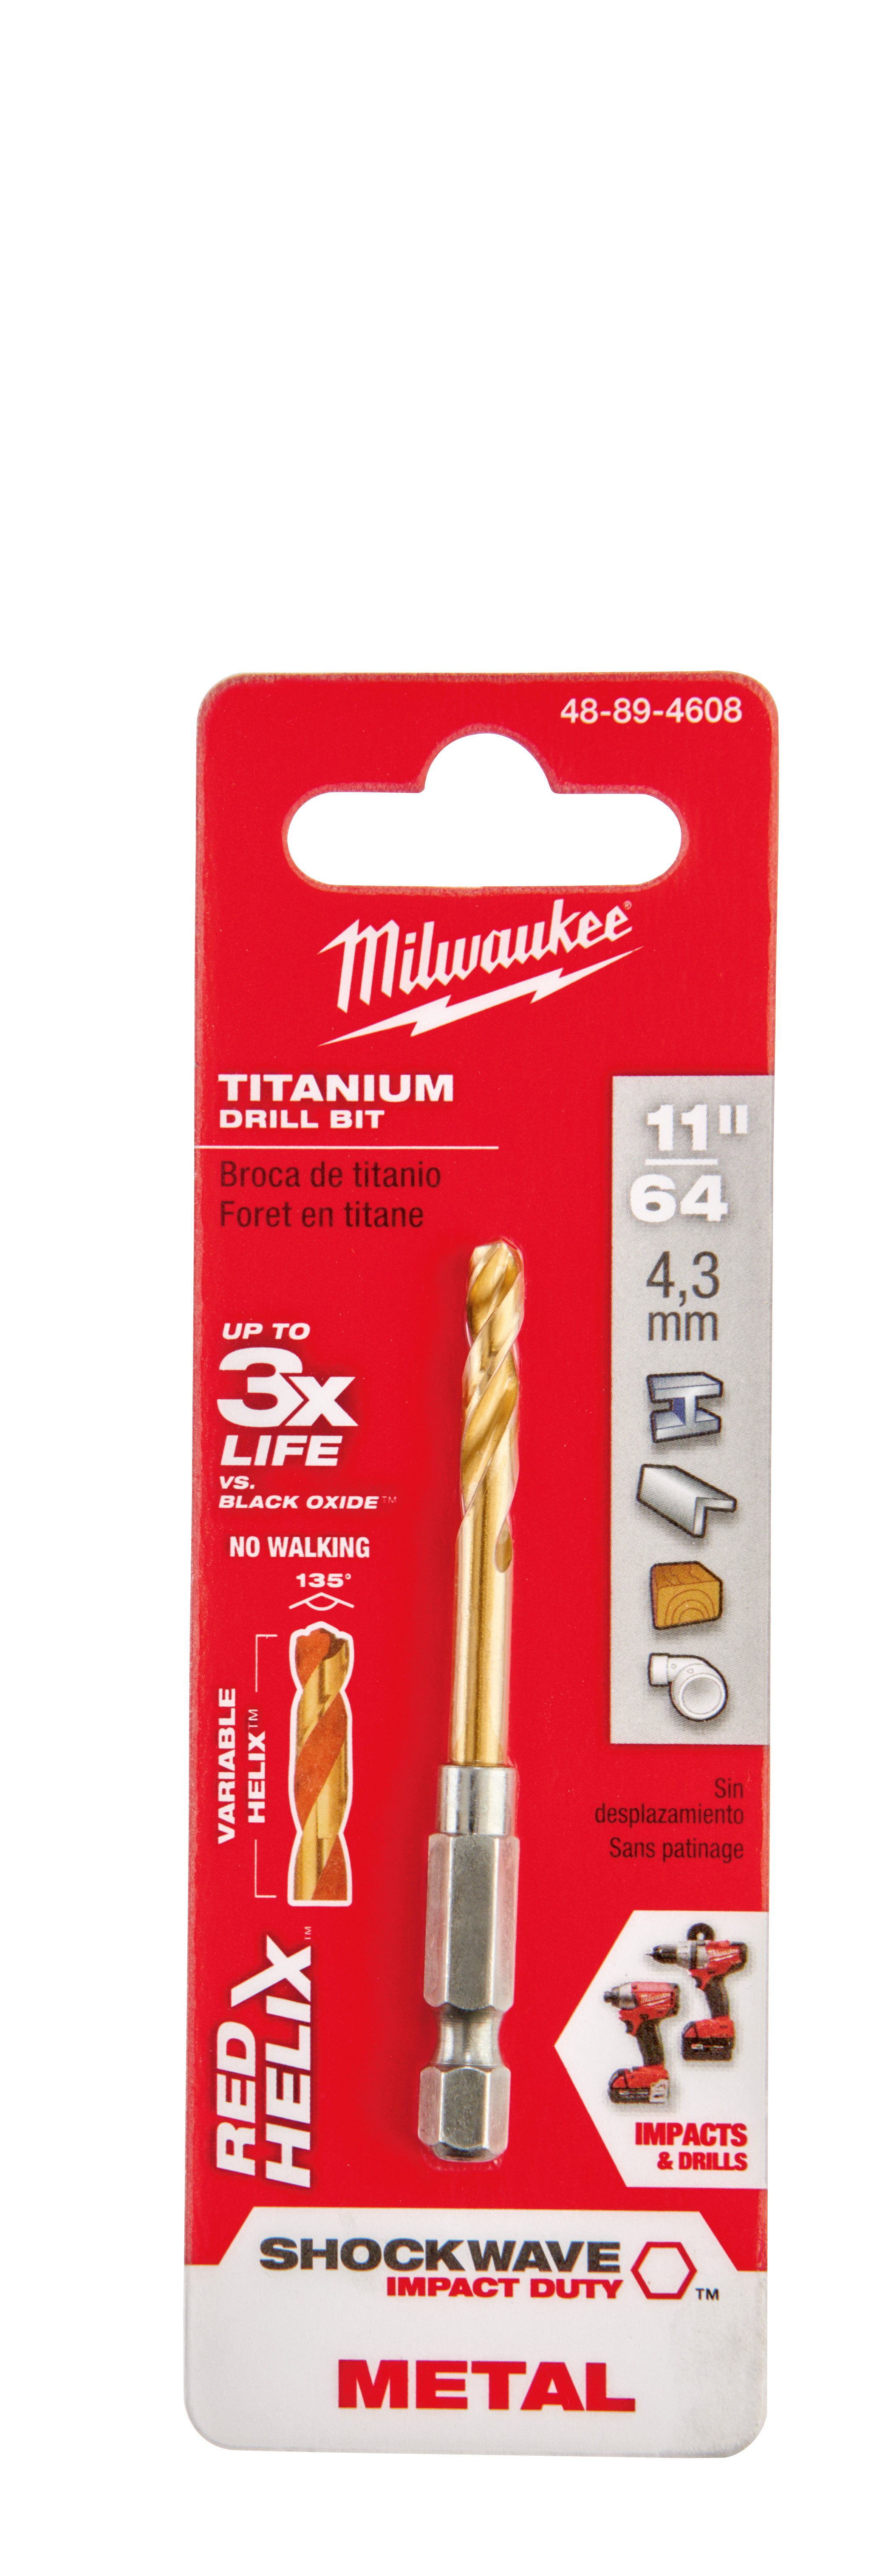 Milwaukee® 48-89-4608 SHOCKWAVE™ Hex Shank Impact Drill Bit, 11/64 in Drill - Fraction, 0.1719 in Drill - Decimal Inch, 1-3/32 in D Cutting